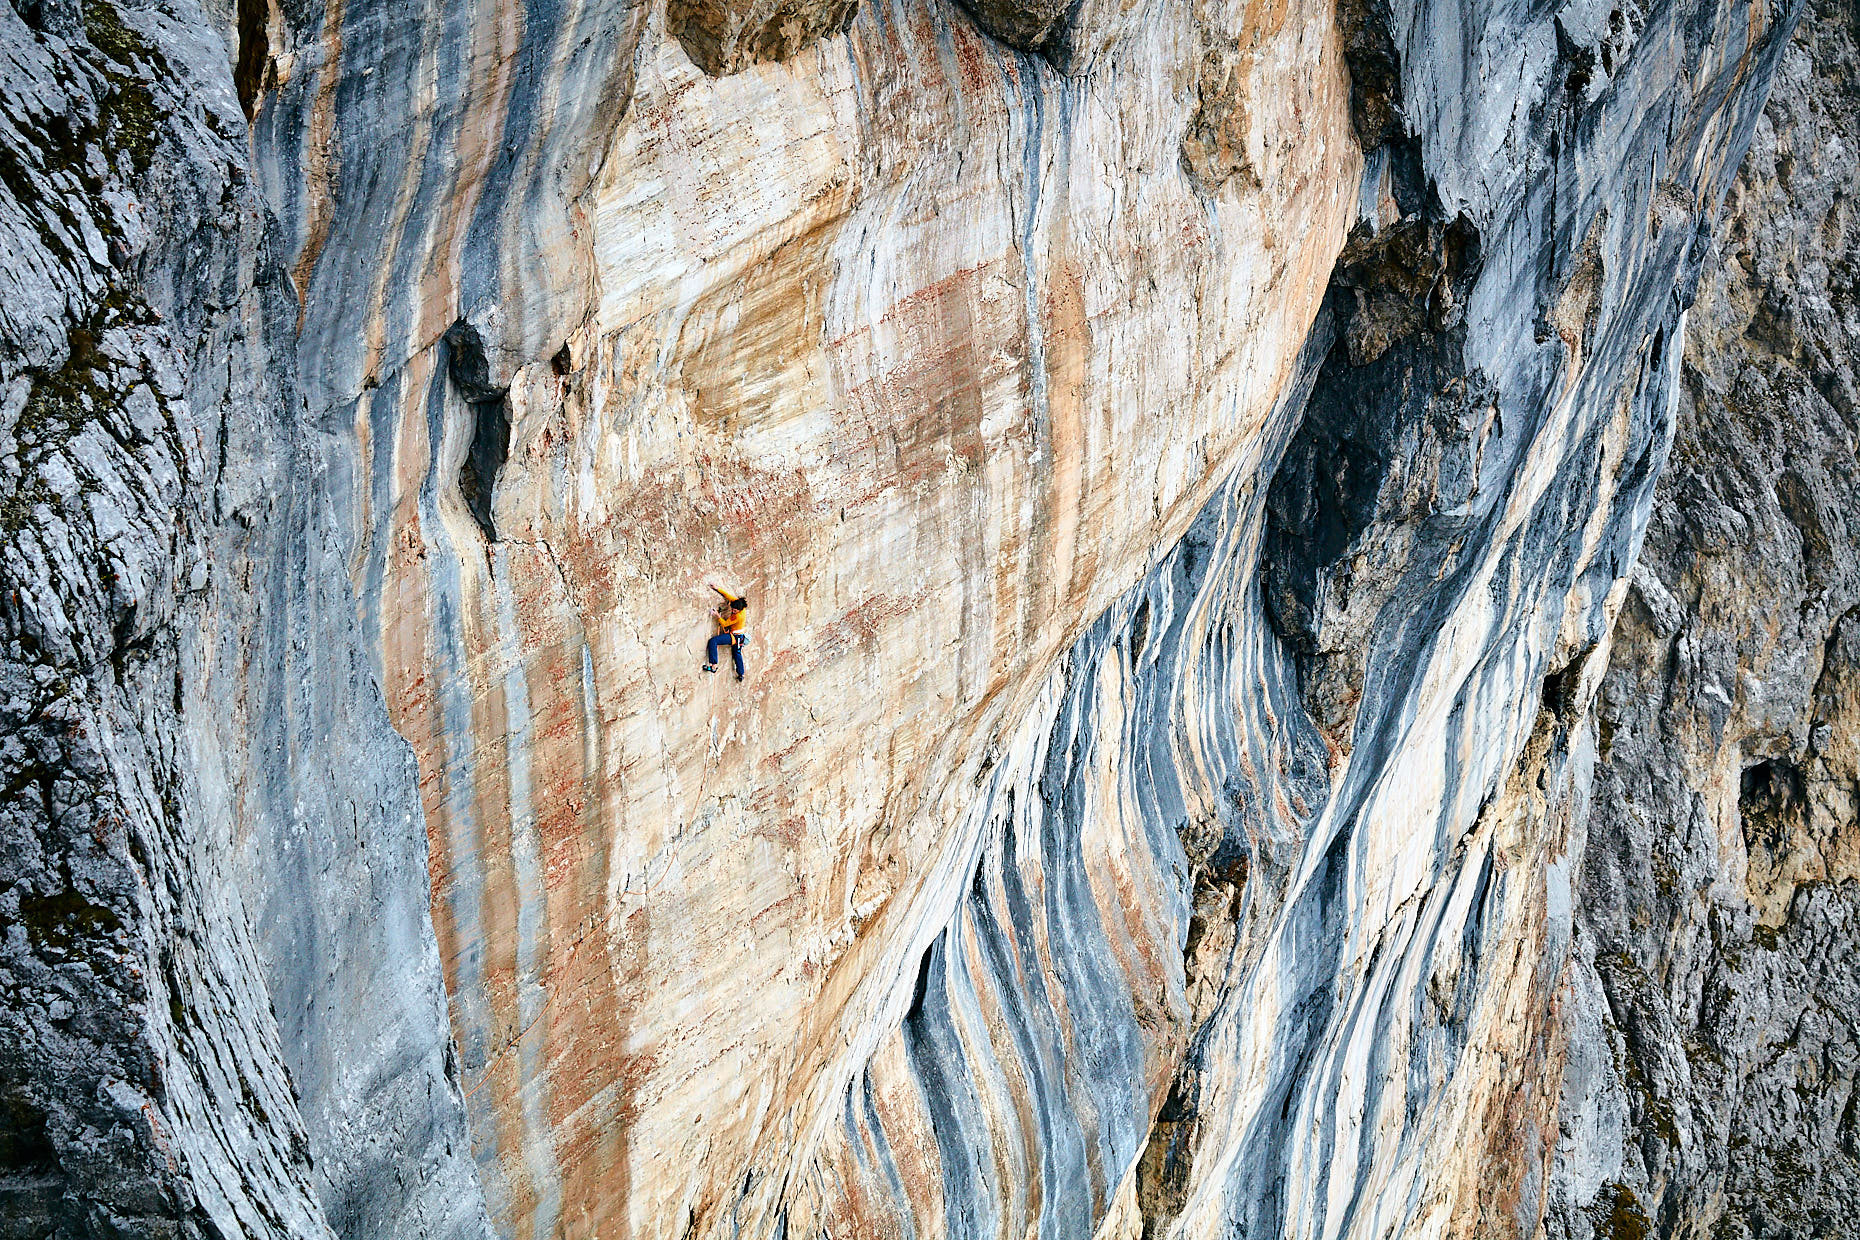 Headless Children | Stefan Kuerzi - Climbing Photography